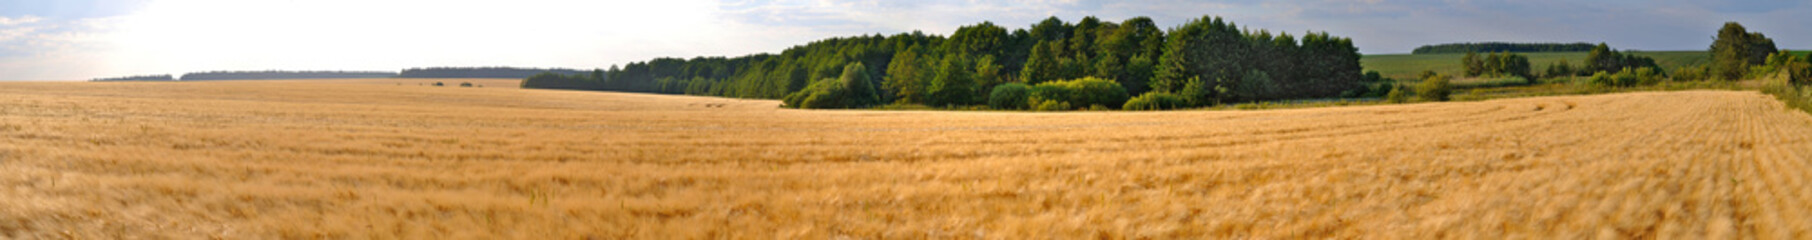 Photo sur Toile Sauvage wheat field panorama